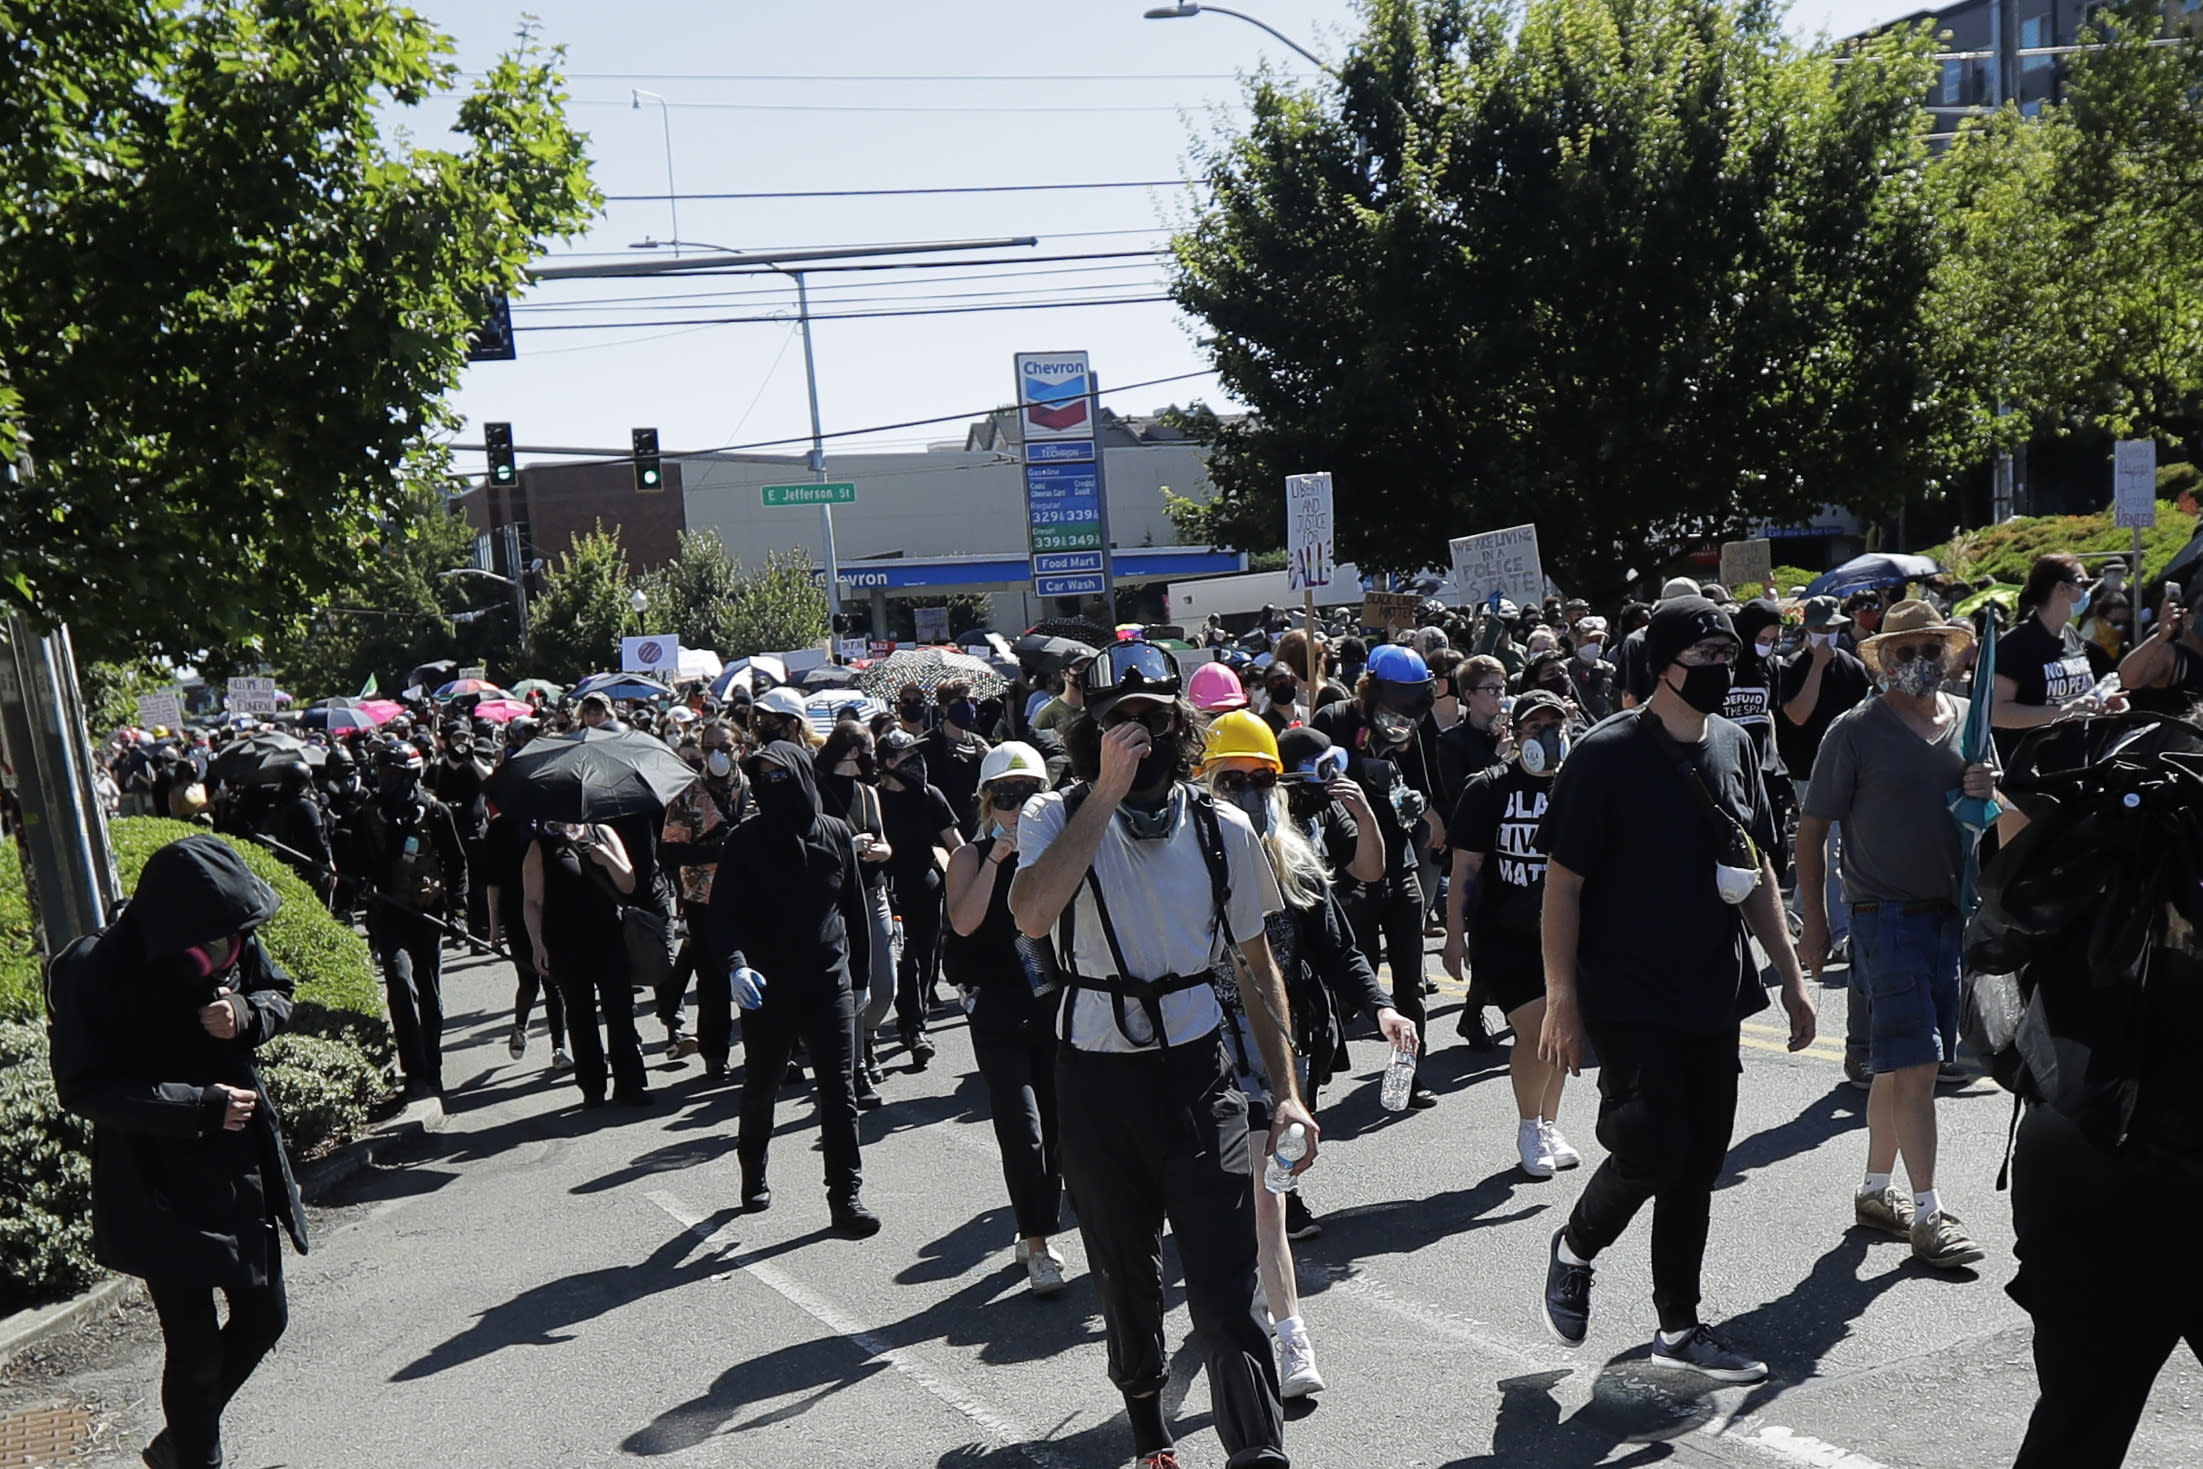 Protesters march near the King County Juvenile Detention Center, Saturday, July 25, 2020, in Seattle, in support of Black Lives Matter and against police brutality and racial injustice. (AP Photo/Ted S. Warren)